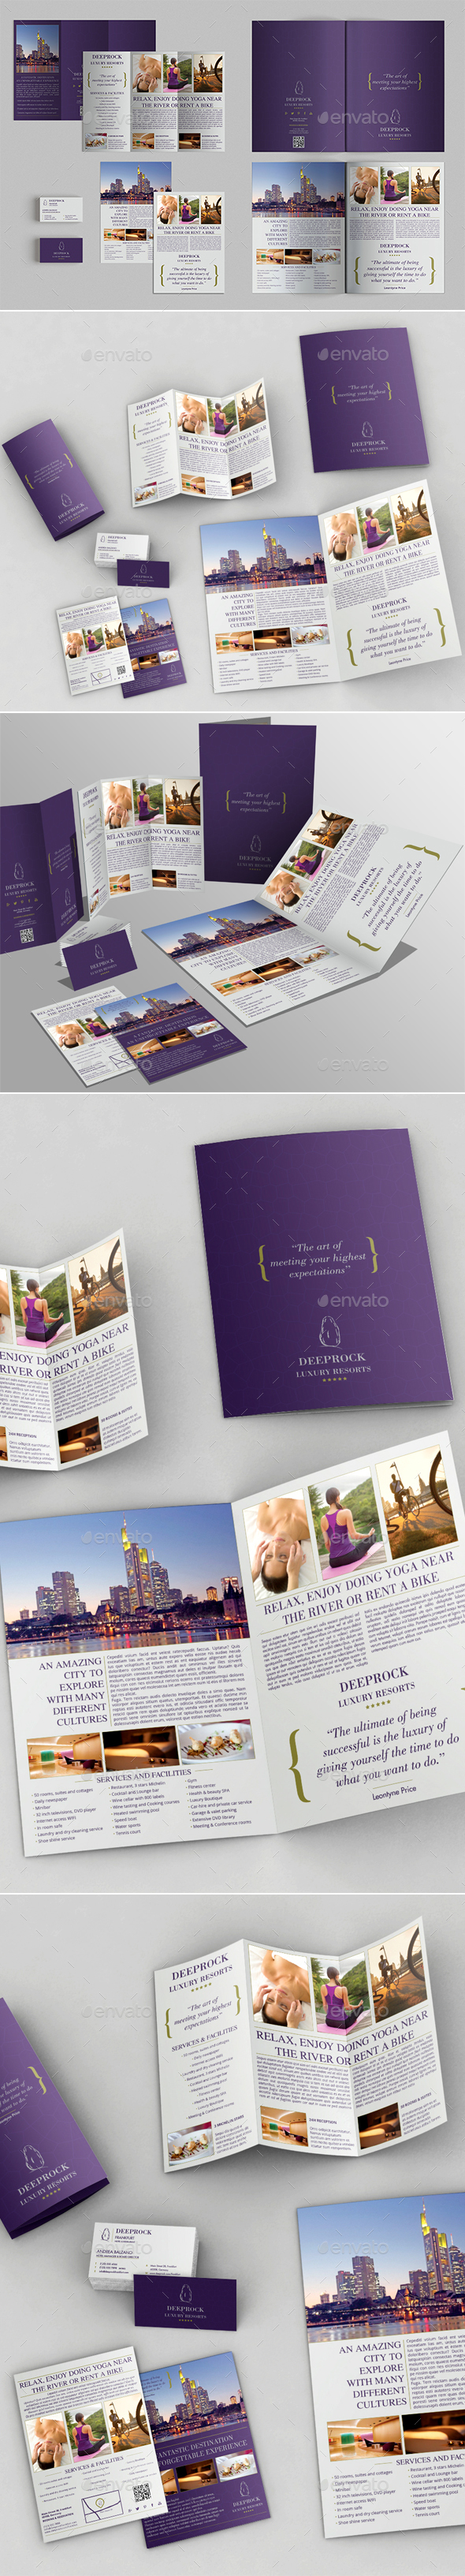 Bifold Brochure + Trifold + Flyer + BC Templates - Brochures Print Templates